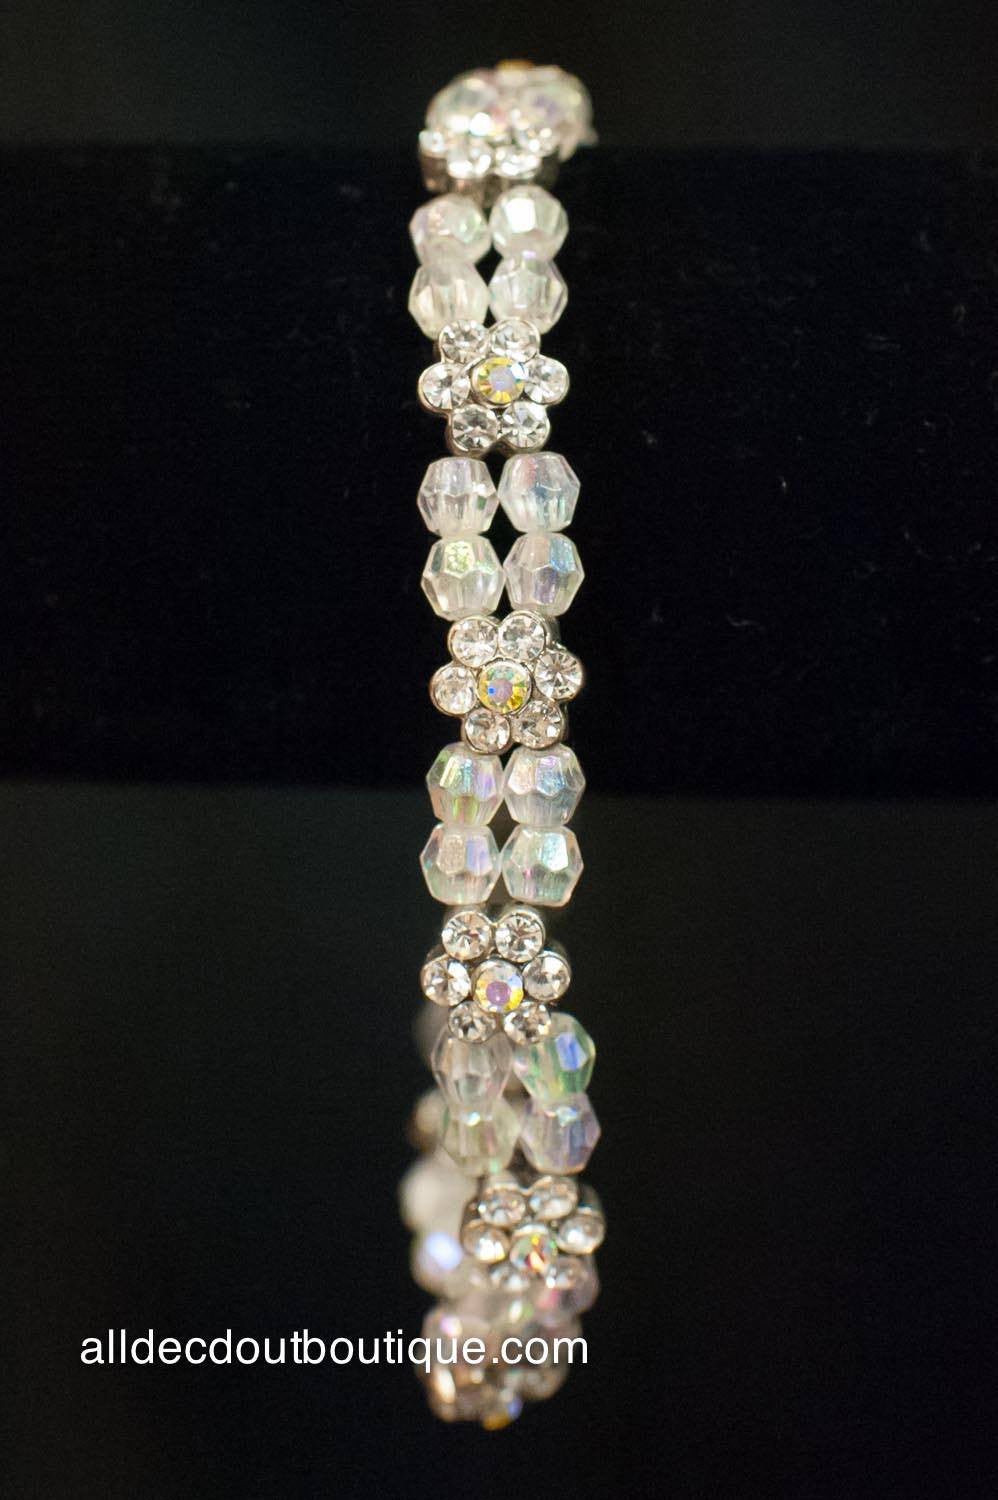 ADO | Beaded Ankle Stretch Bracelet with Crystal Flowers - All Decd Out